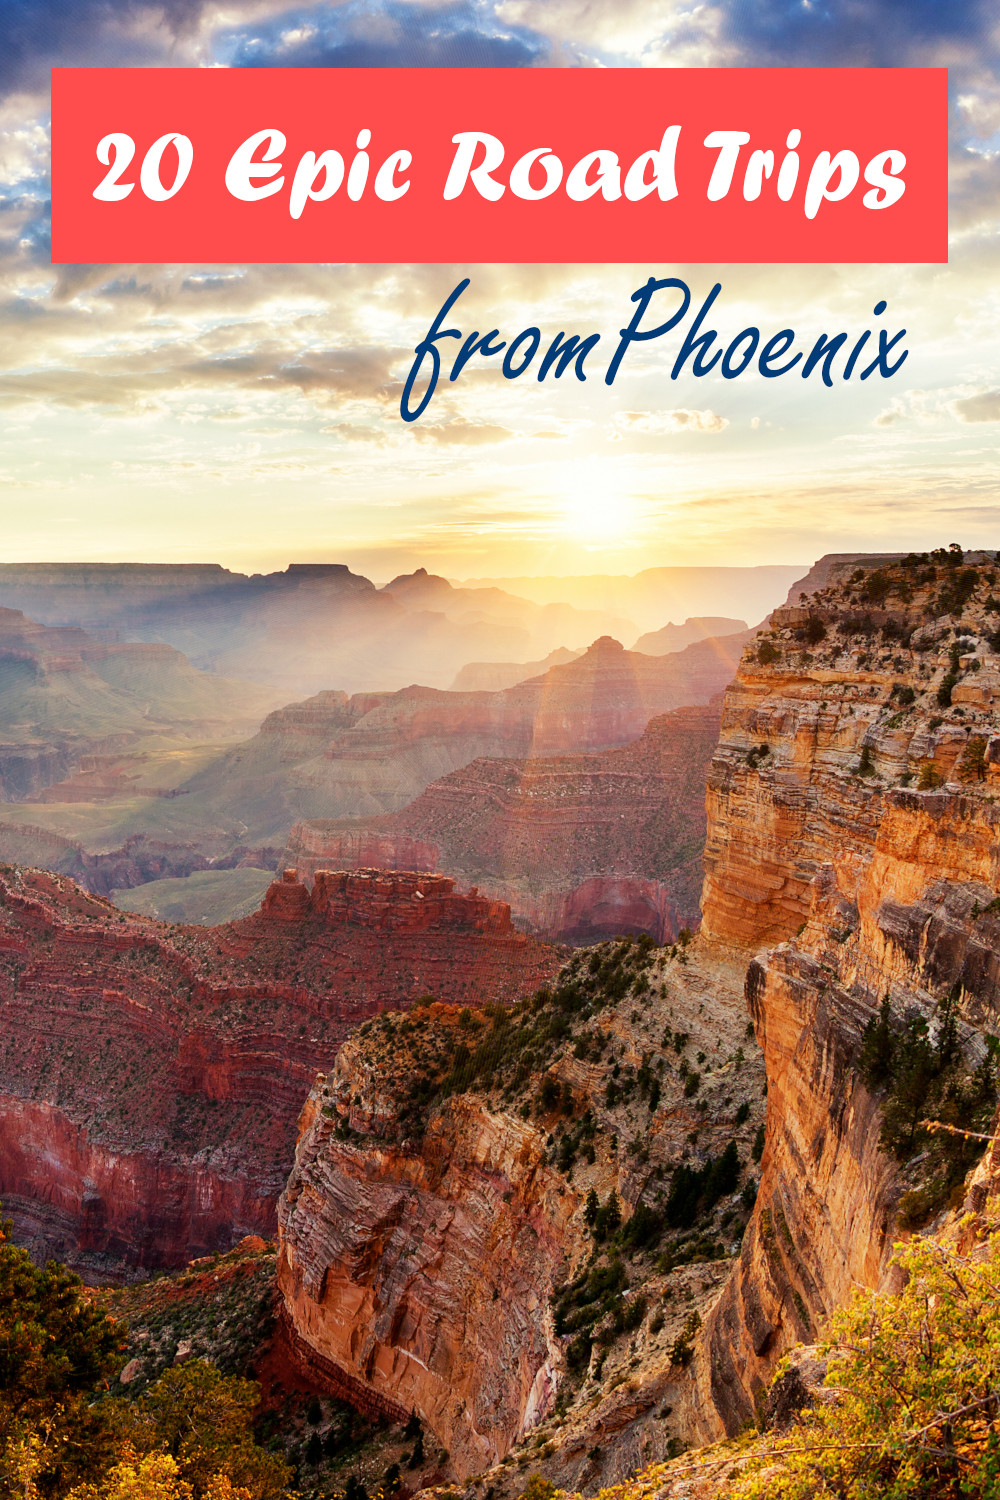 20 Epic road trips from Phoenix across Arizona, California, Nevada, Utah and New Mexico from desert drives to city breaks and amazing roads.